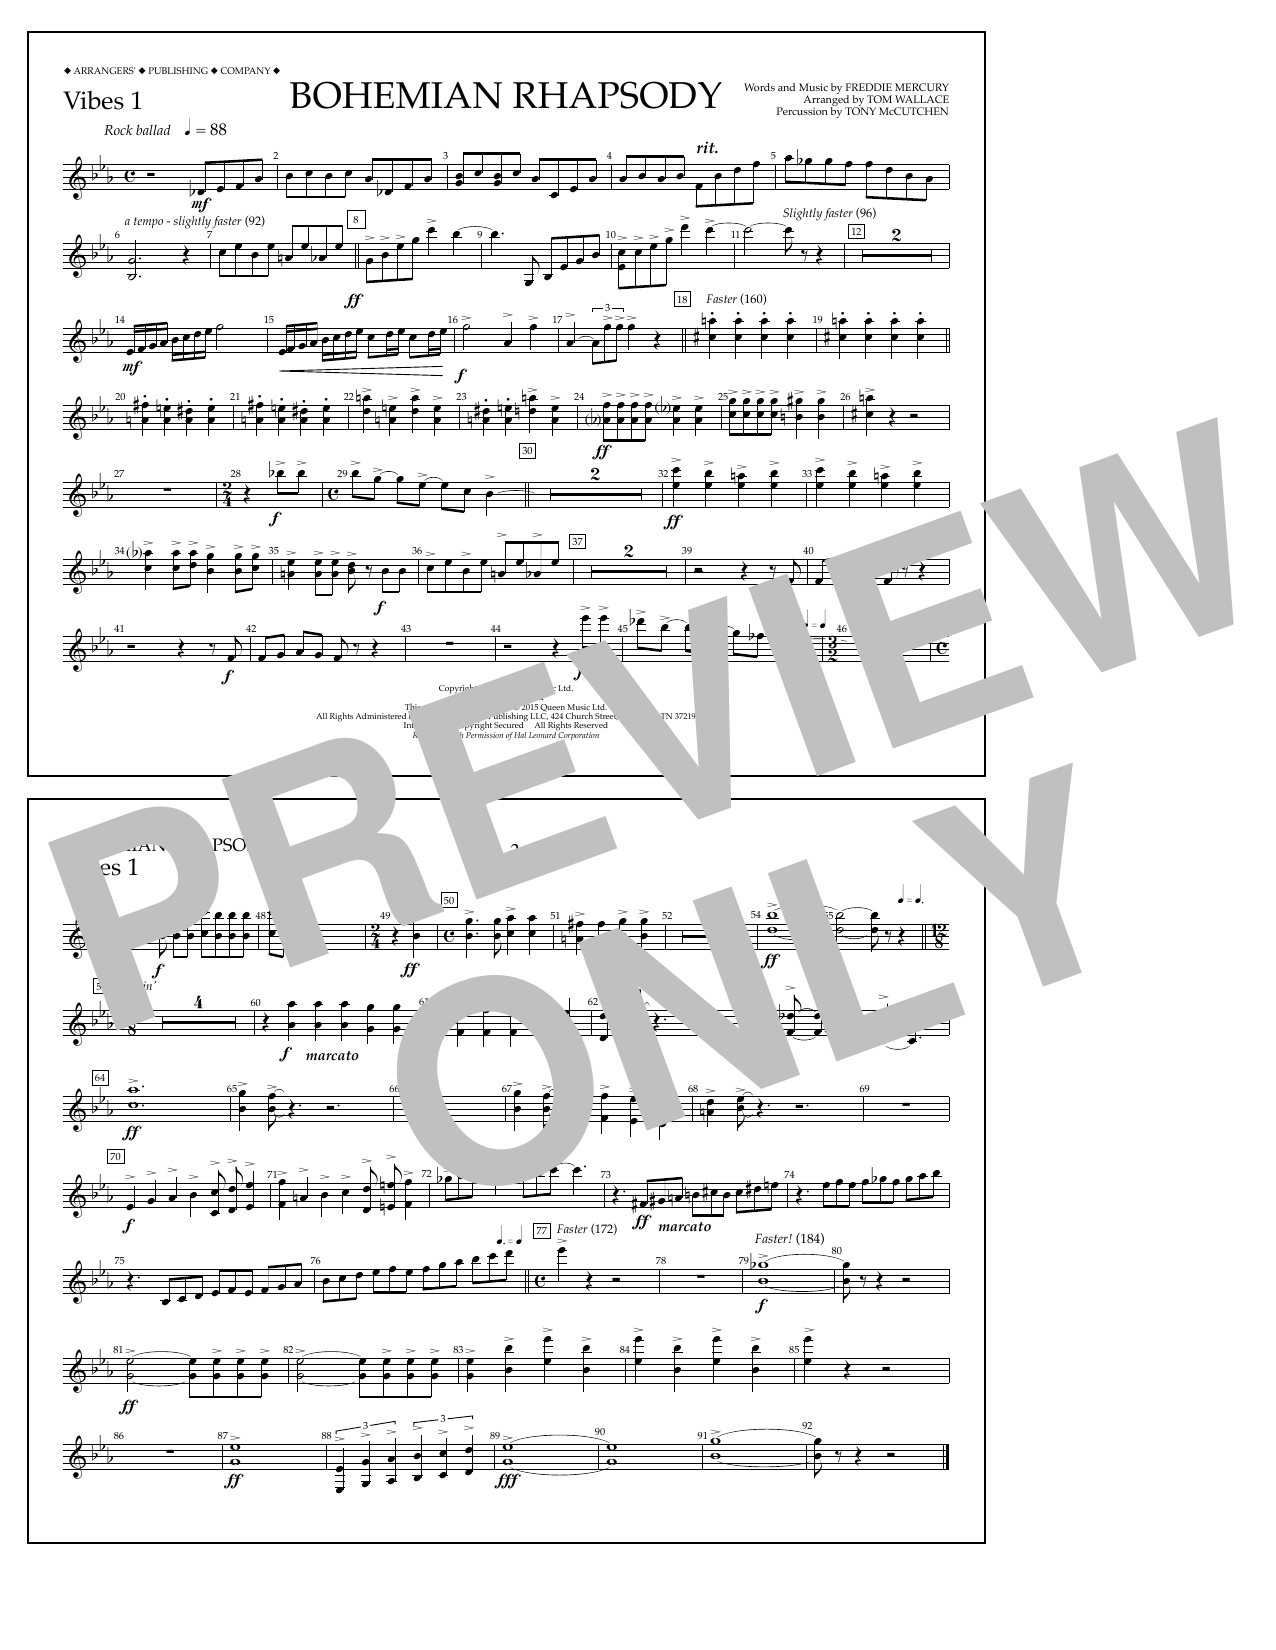 Bohemian Rhapsody - Vibes 1 Digitale Noten